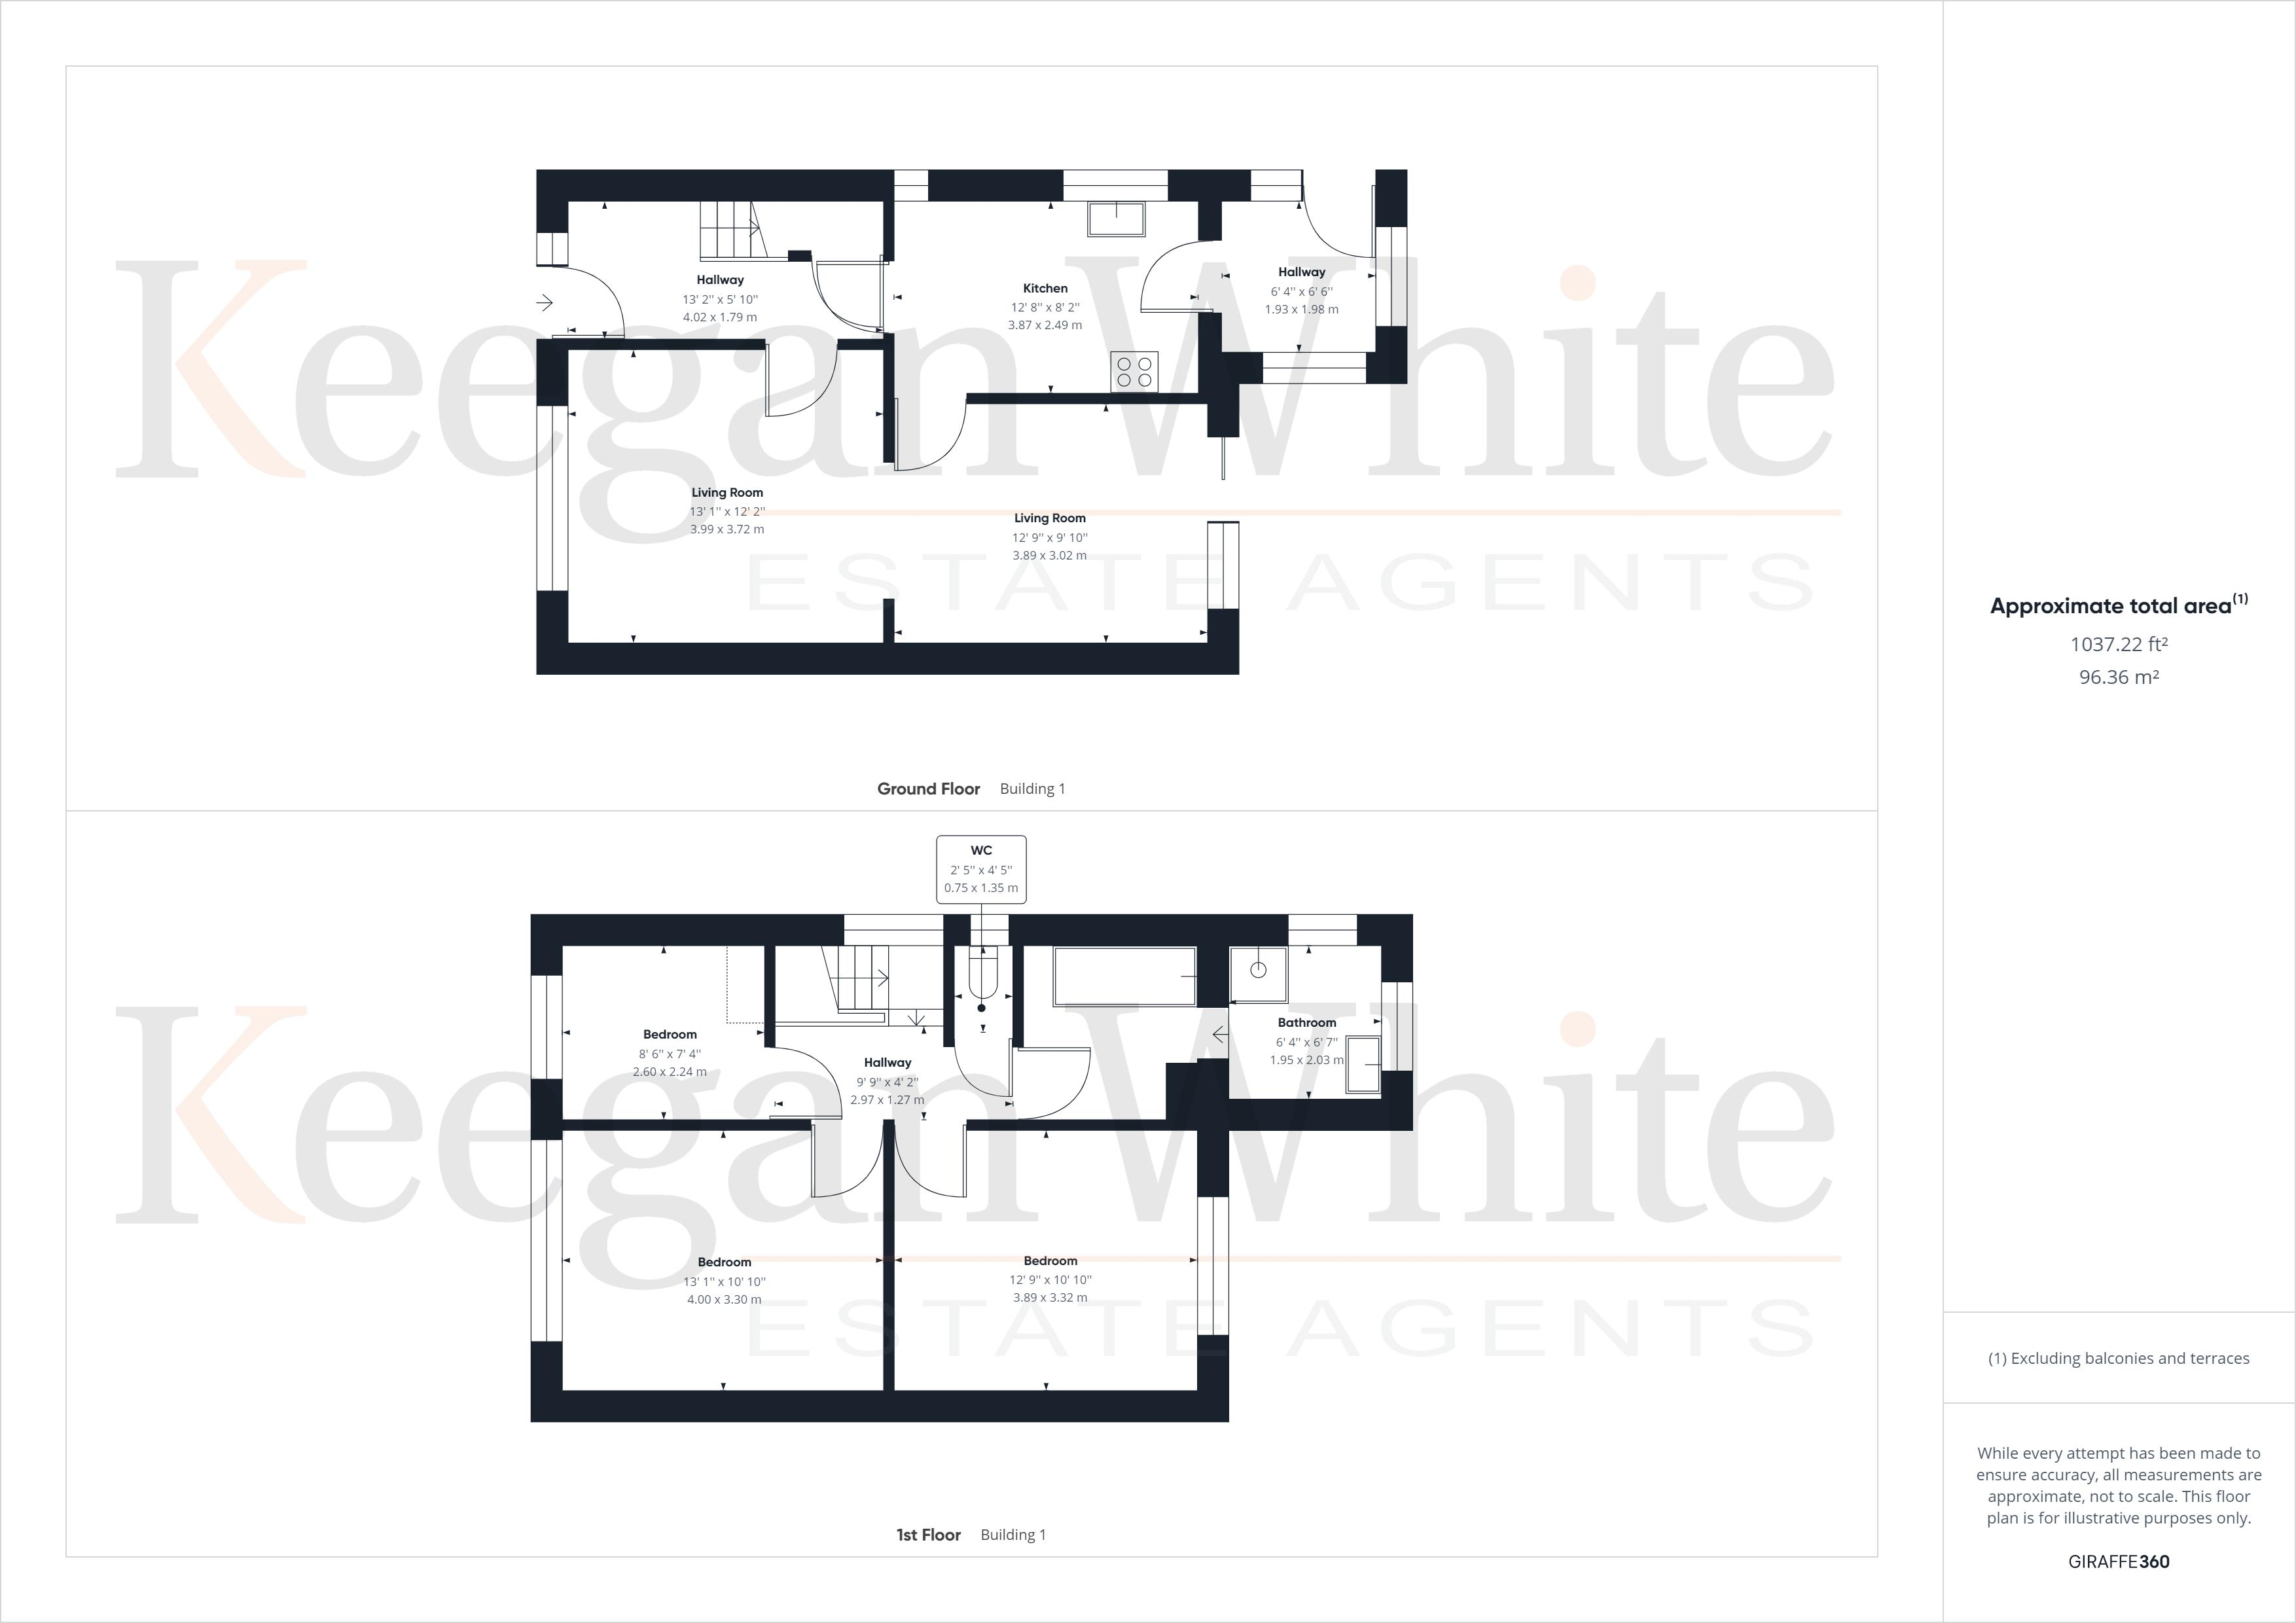 Keegan White Estate Agents in High Wycombe - Floor